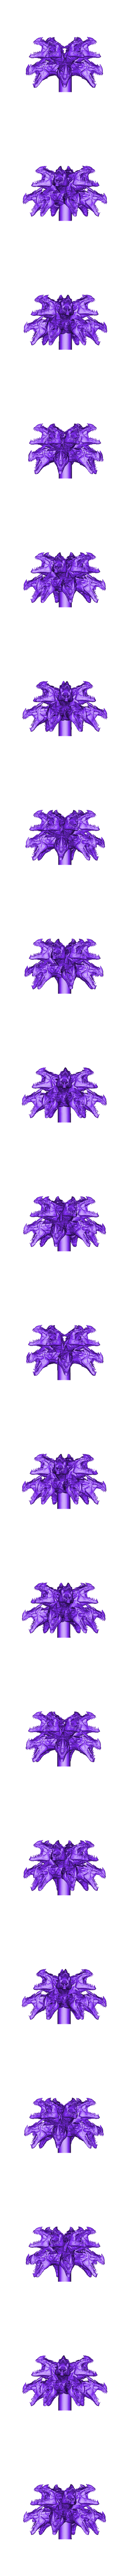 dragon_fountain10.stl Télécharger fichier STL gratuit fontaine du dragon 10 • Plan pour imprimante 3D, veganagev